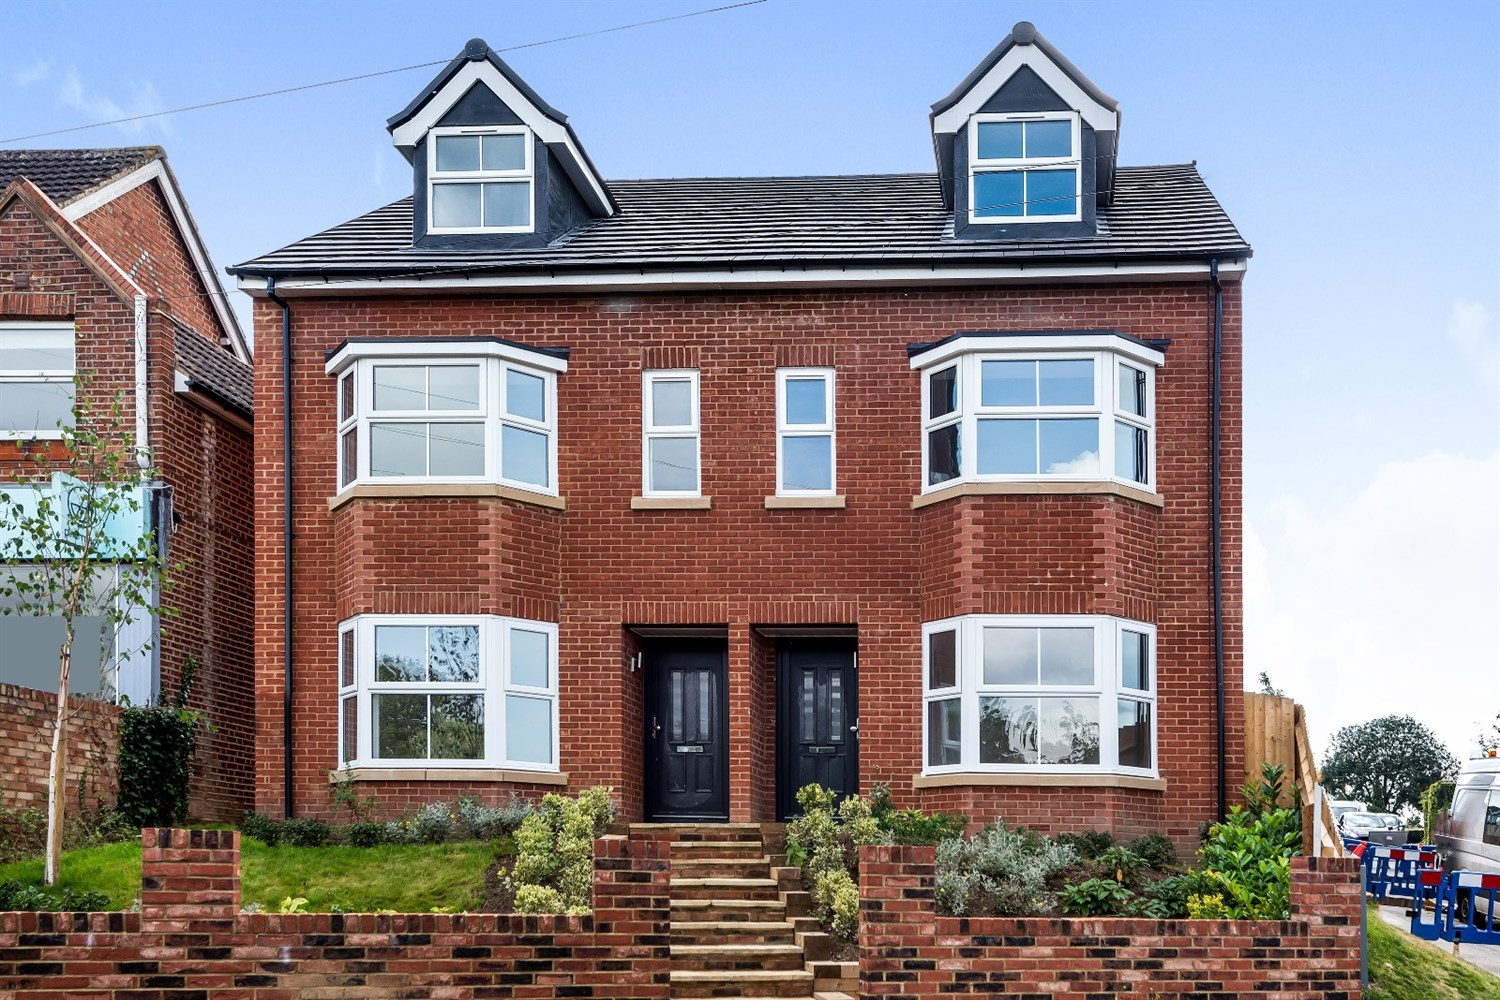 Bushnell House at Victoria Road - 3 bed semi-detached, Wargrave, RG10 8AE